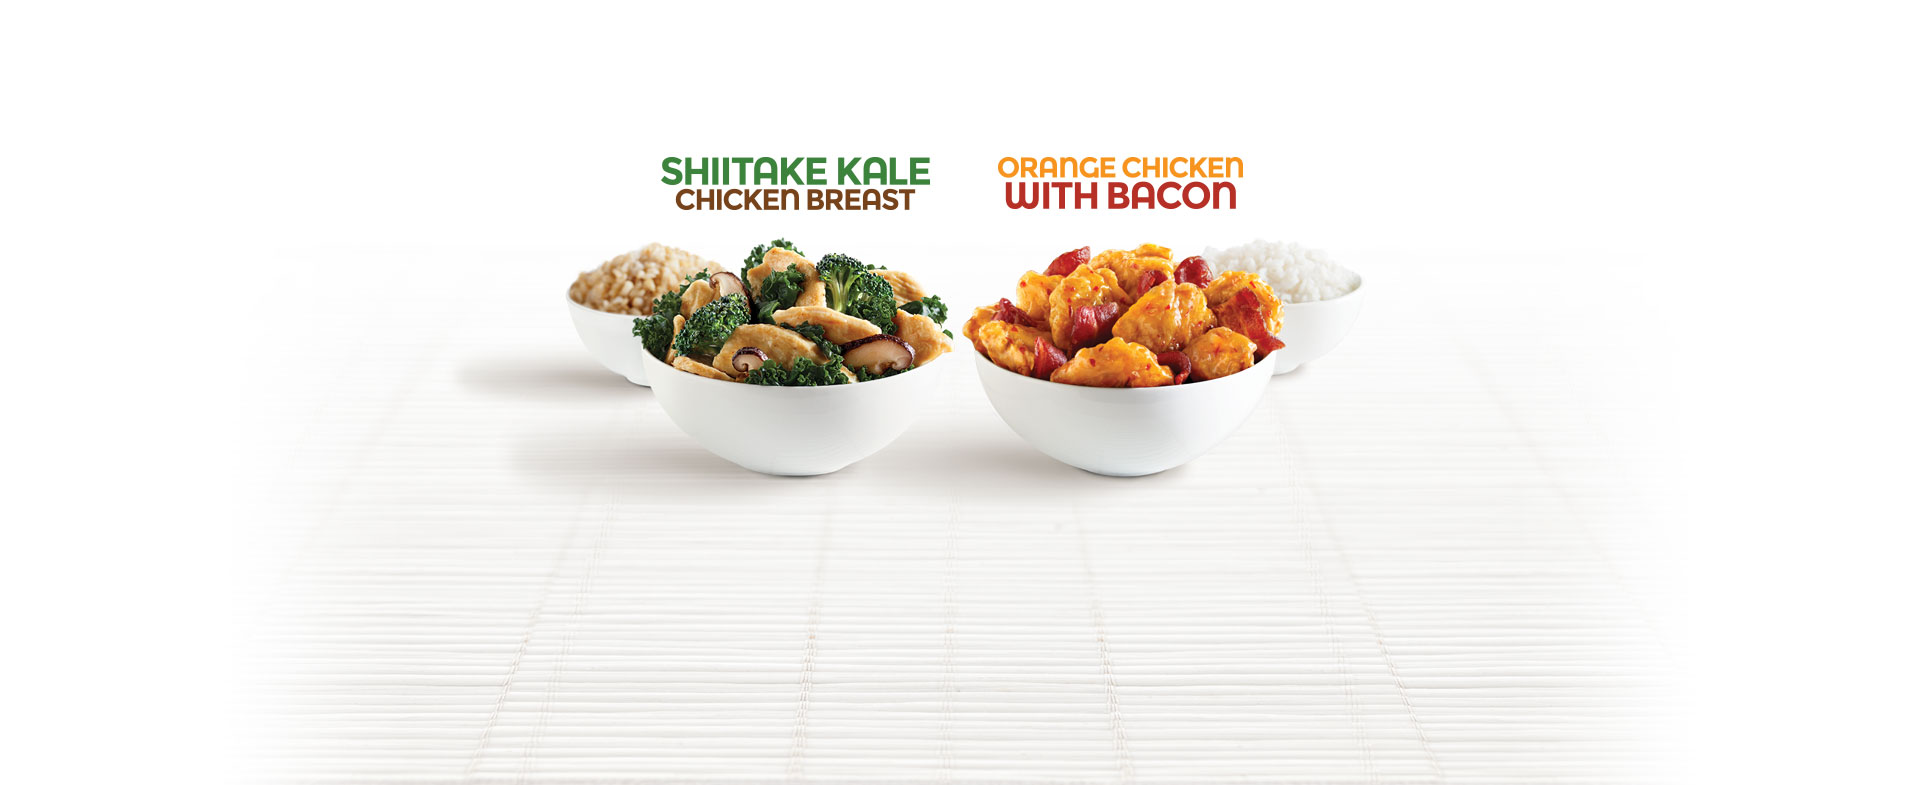 Shiitake Kale Chicken Breast and Orange Chicken with Bacon